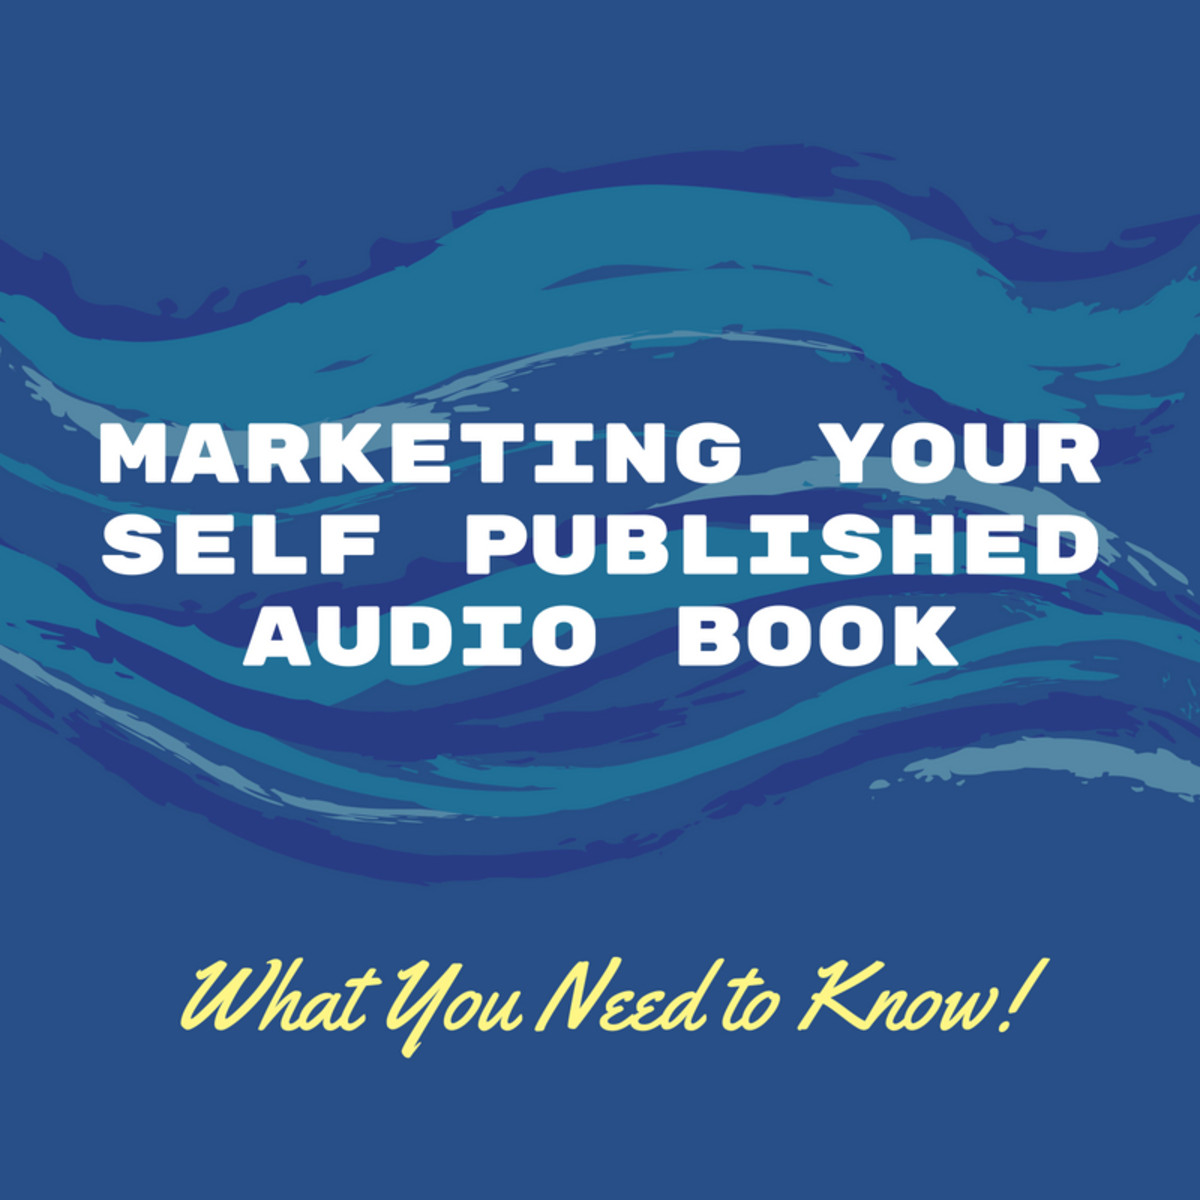 Marketing Your Self-Published Audiobook: What You Need to Know